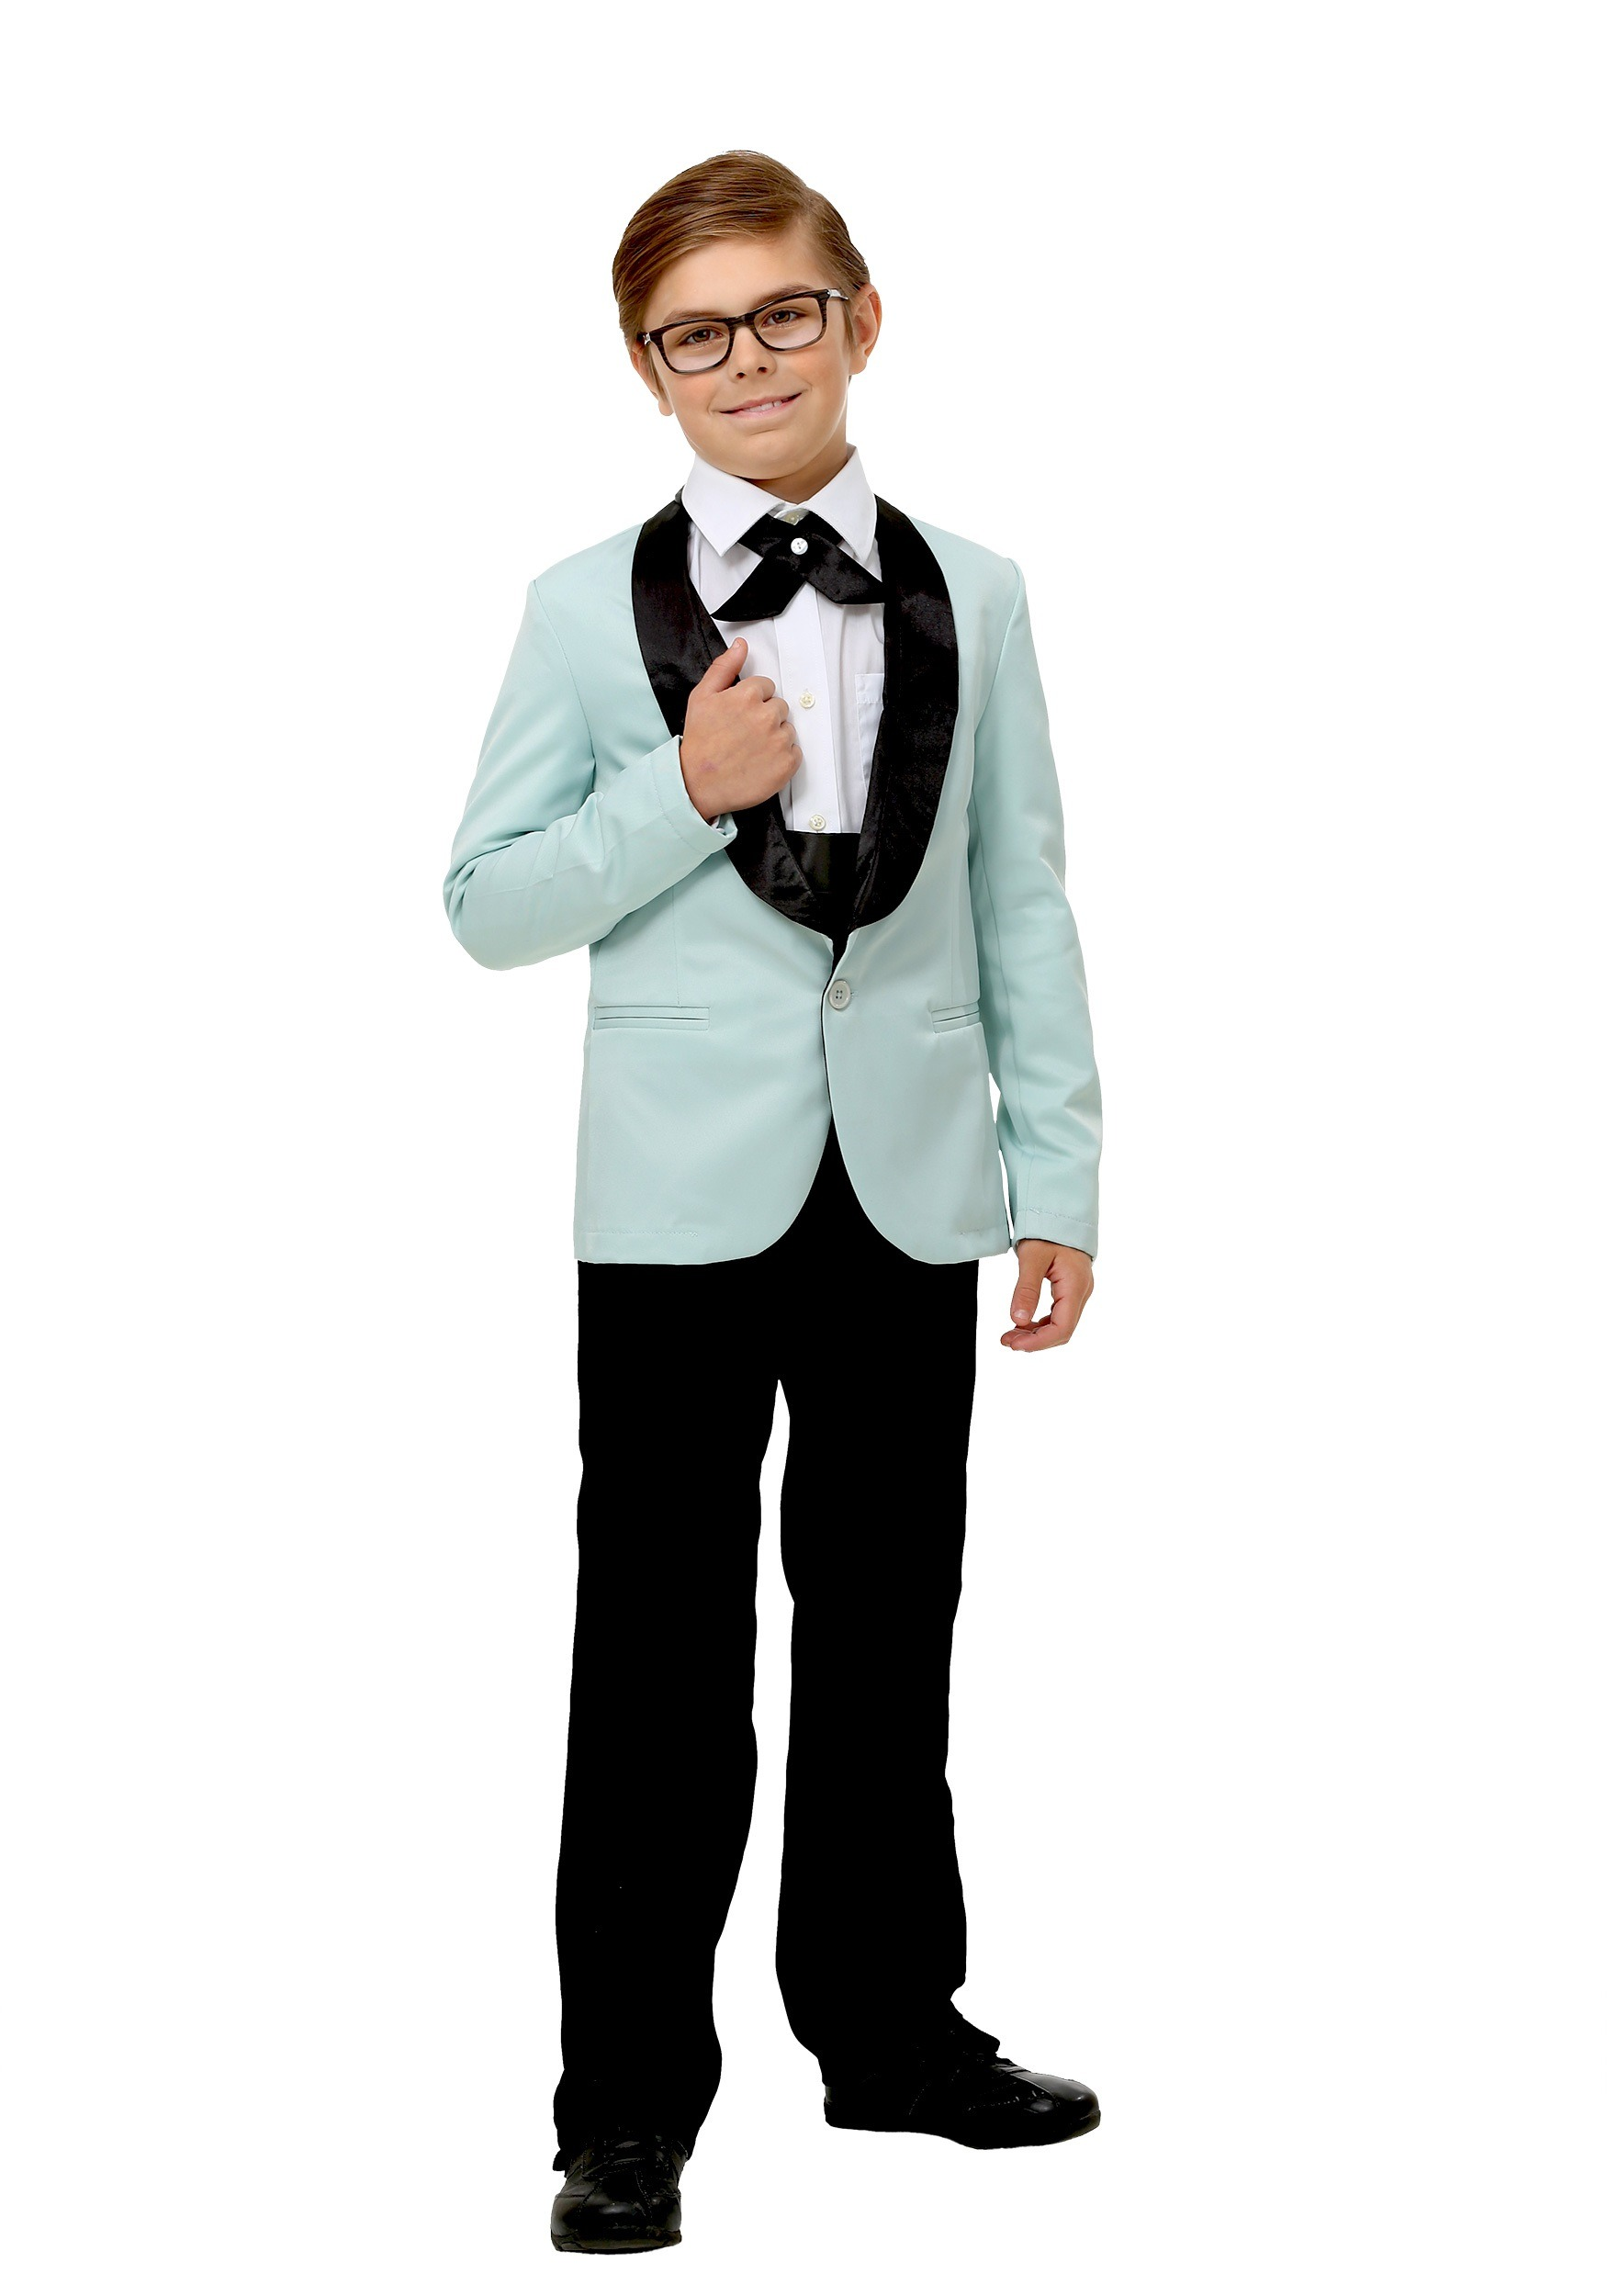 Boys Mr. 50u0027s Costume  sc 1 st  Halloween Costumes & Boys Mr. 50s Costume